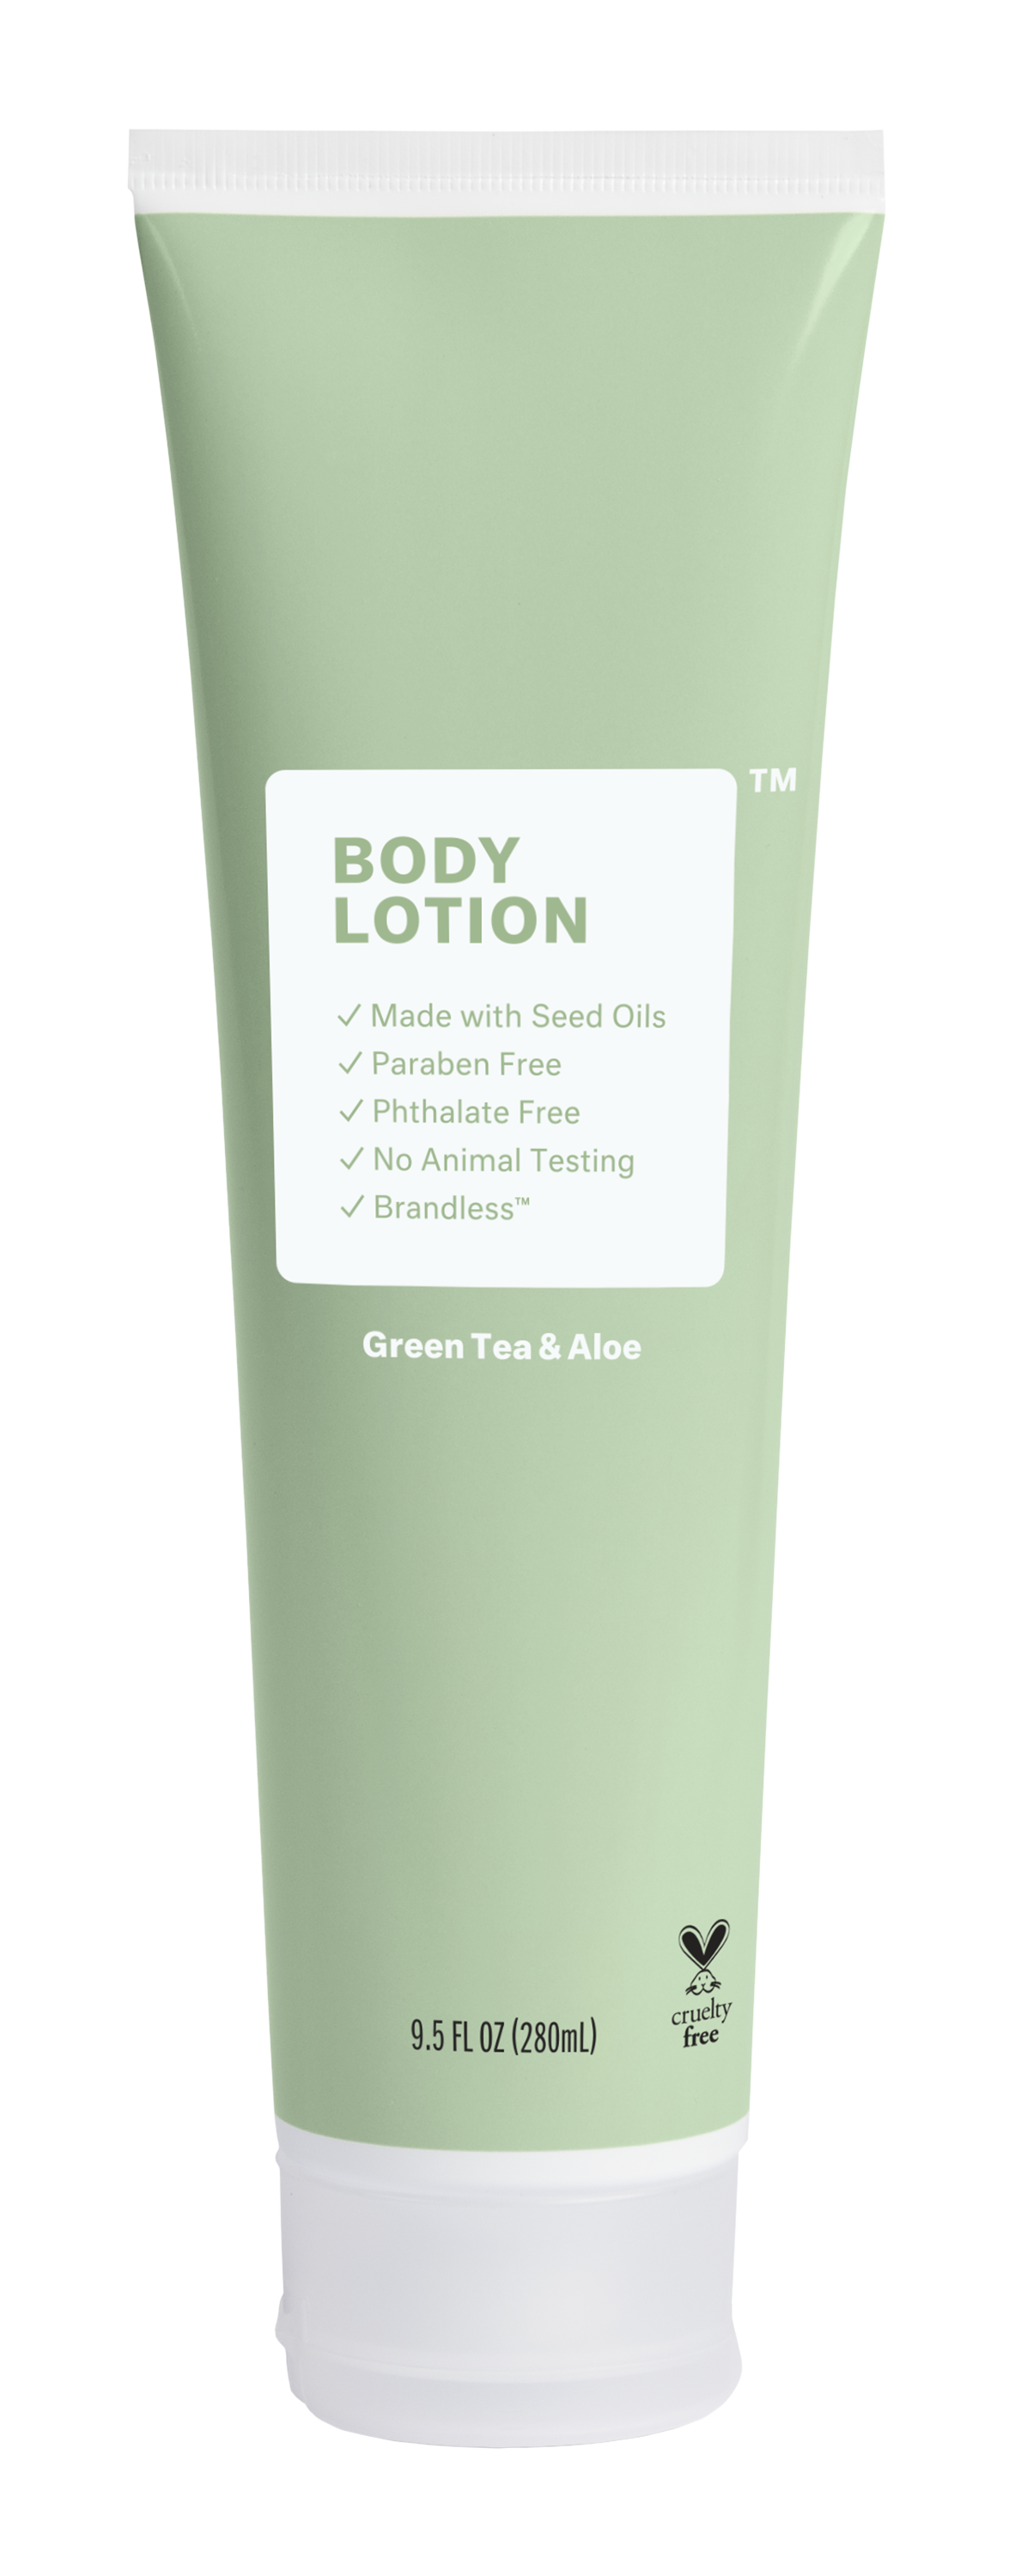 Brandless: Body Lotion, Green Tea & Aloe